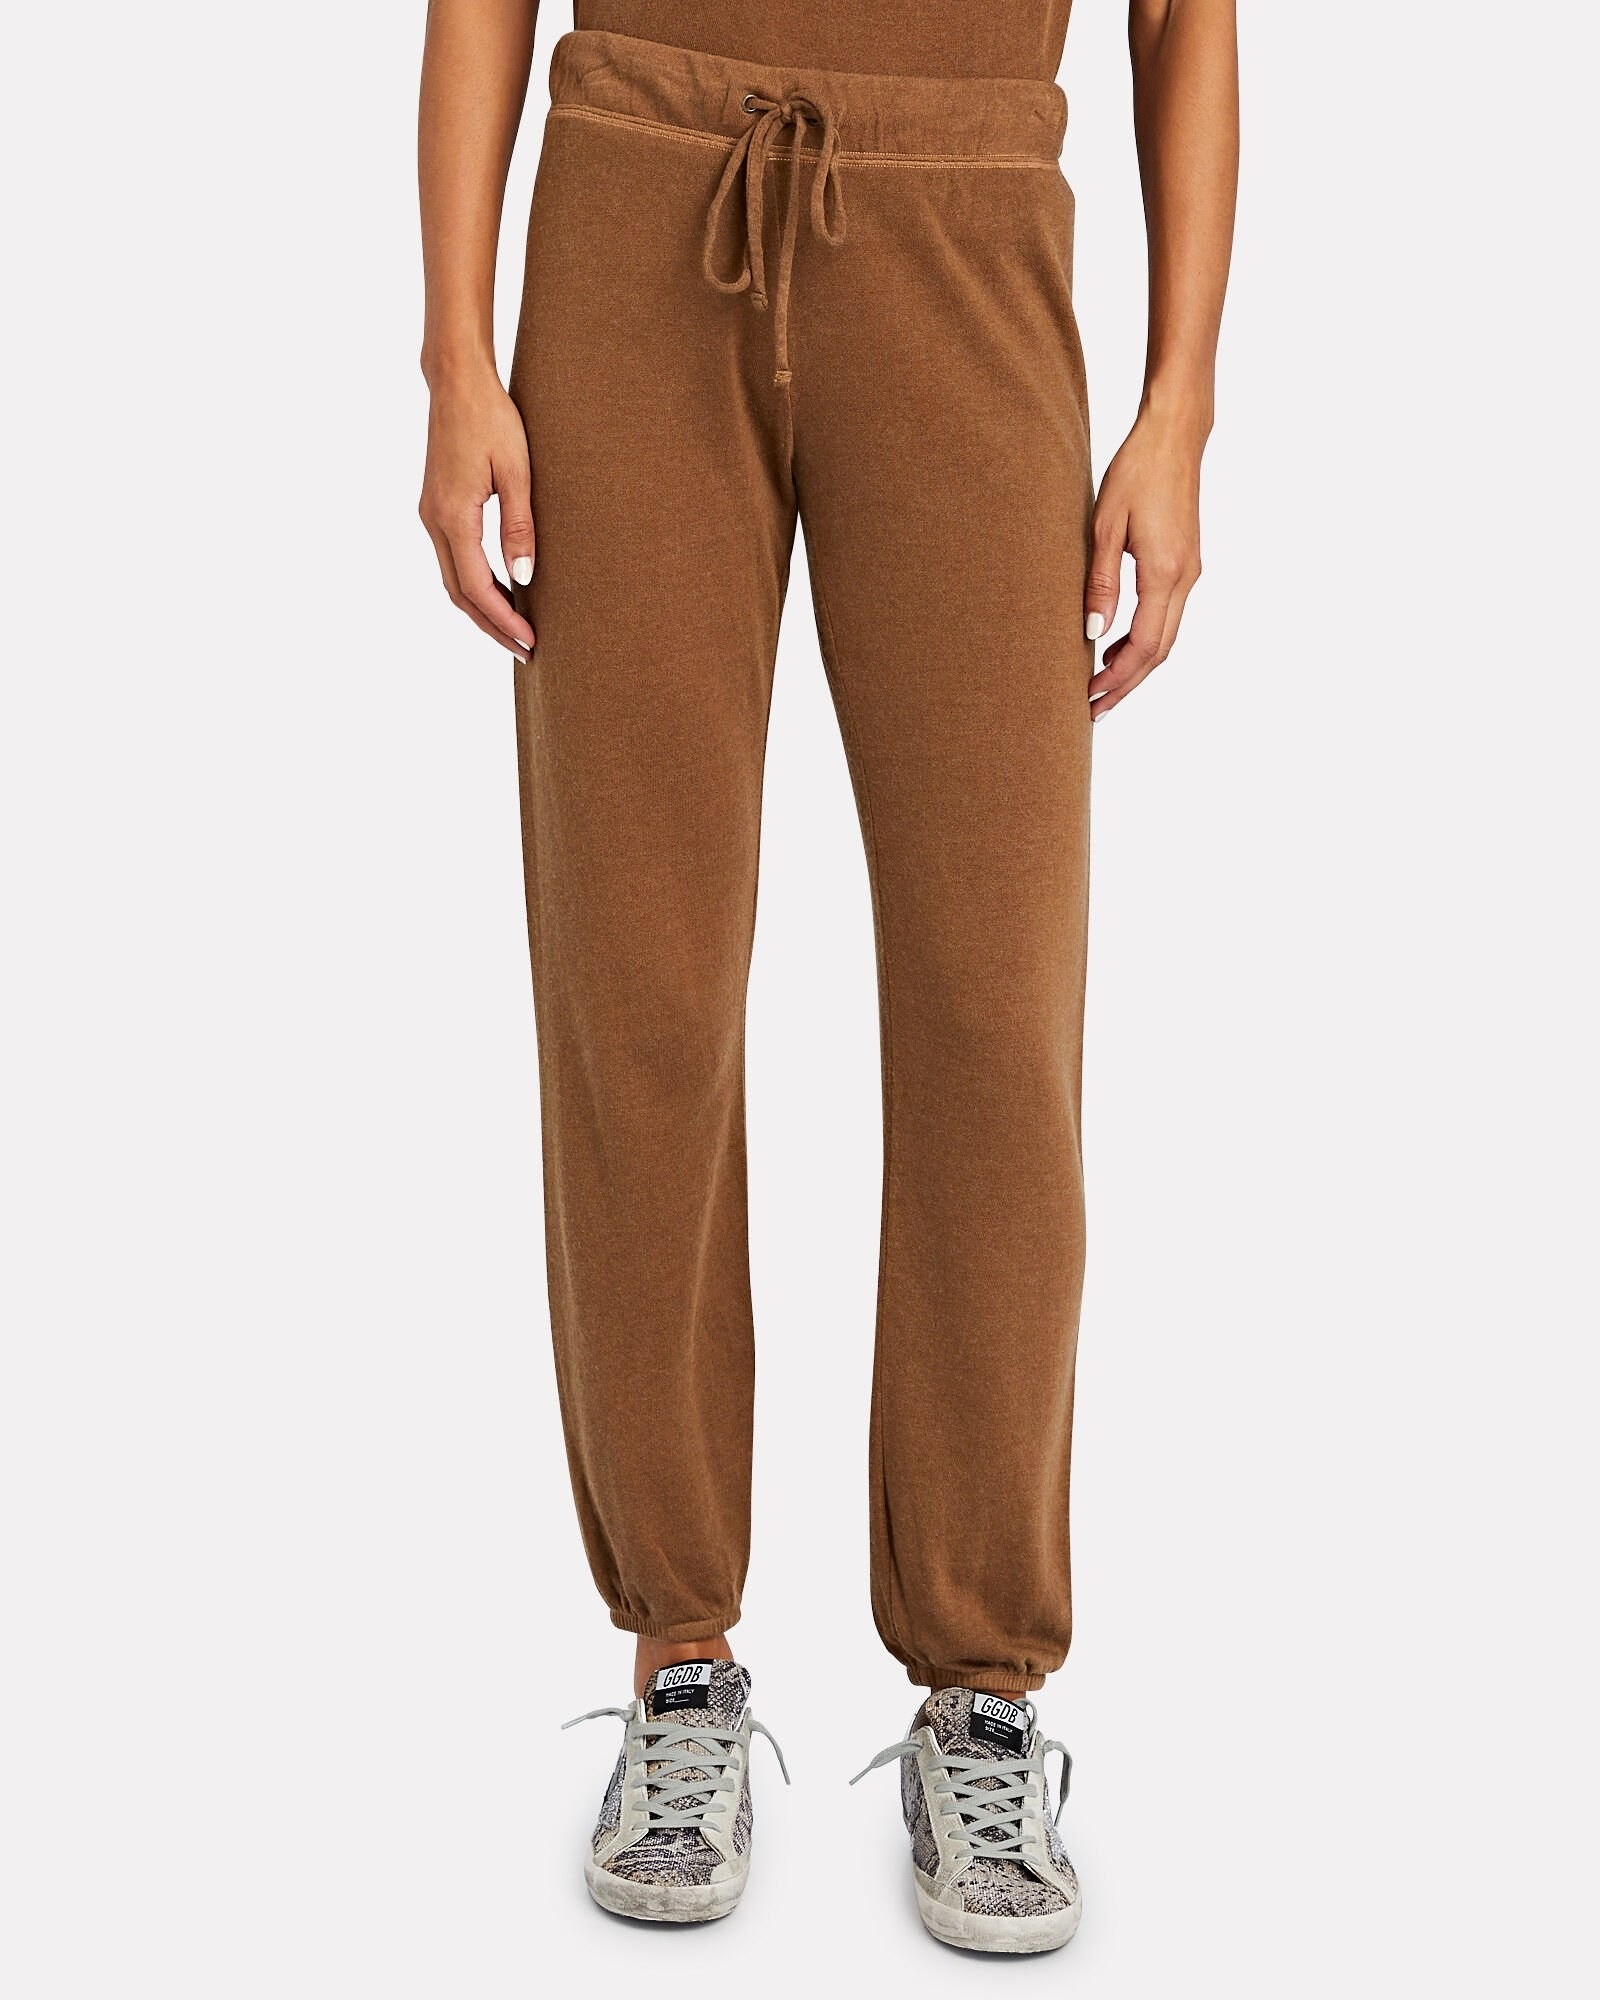 A model wearing the cognac colored joggers, which have a drawstring waist and are gathered at the ankles